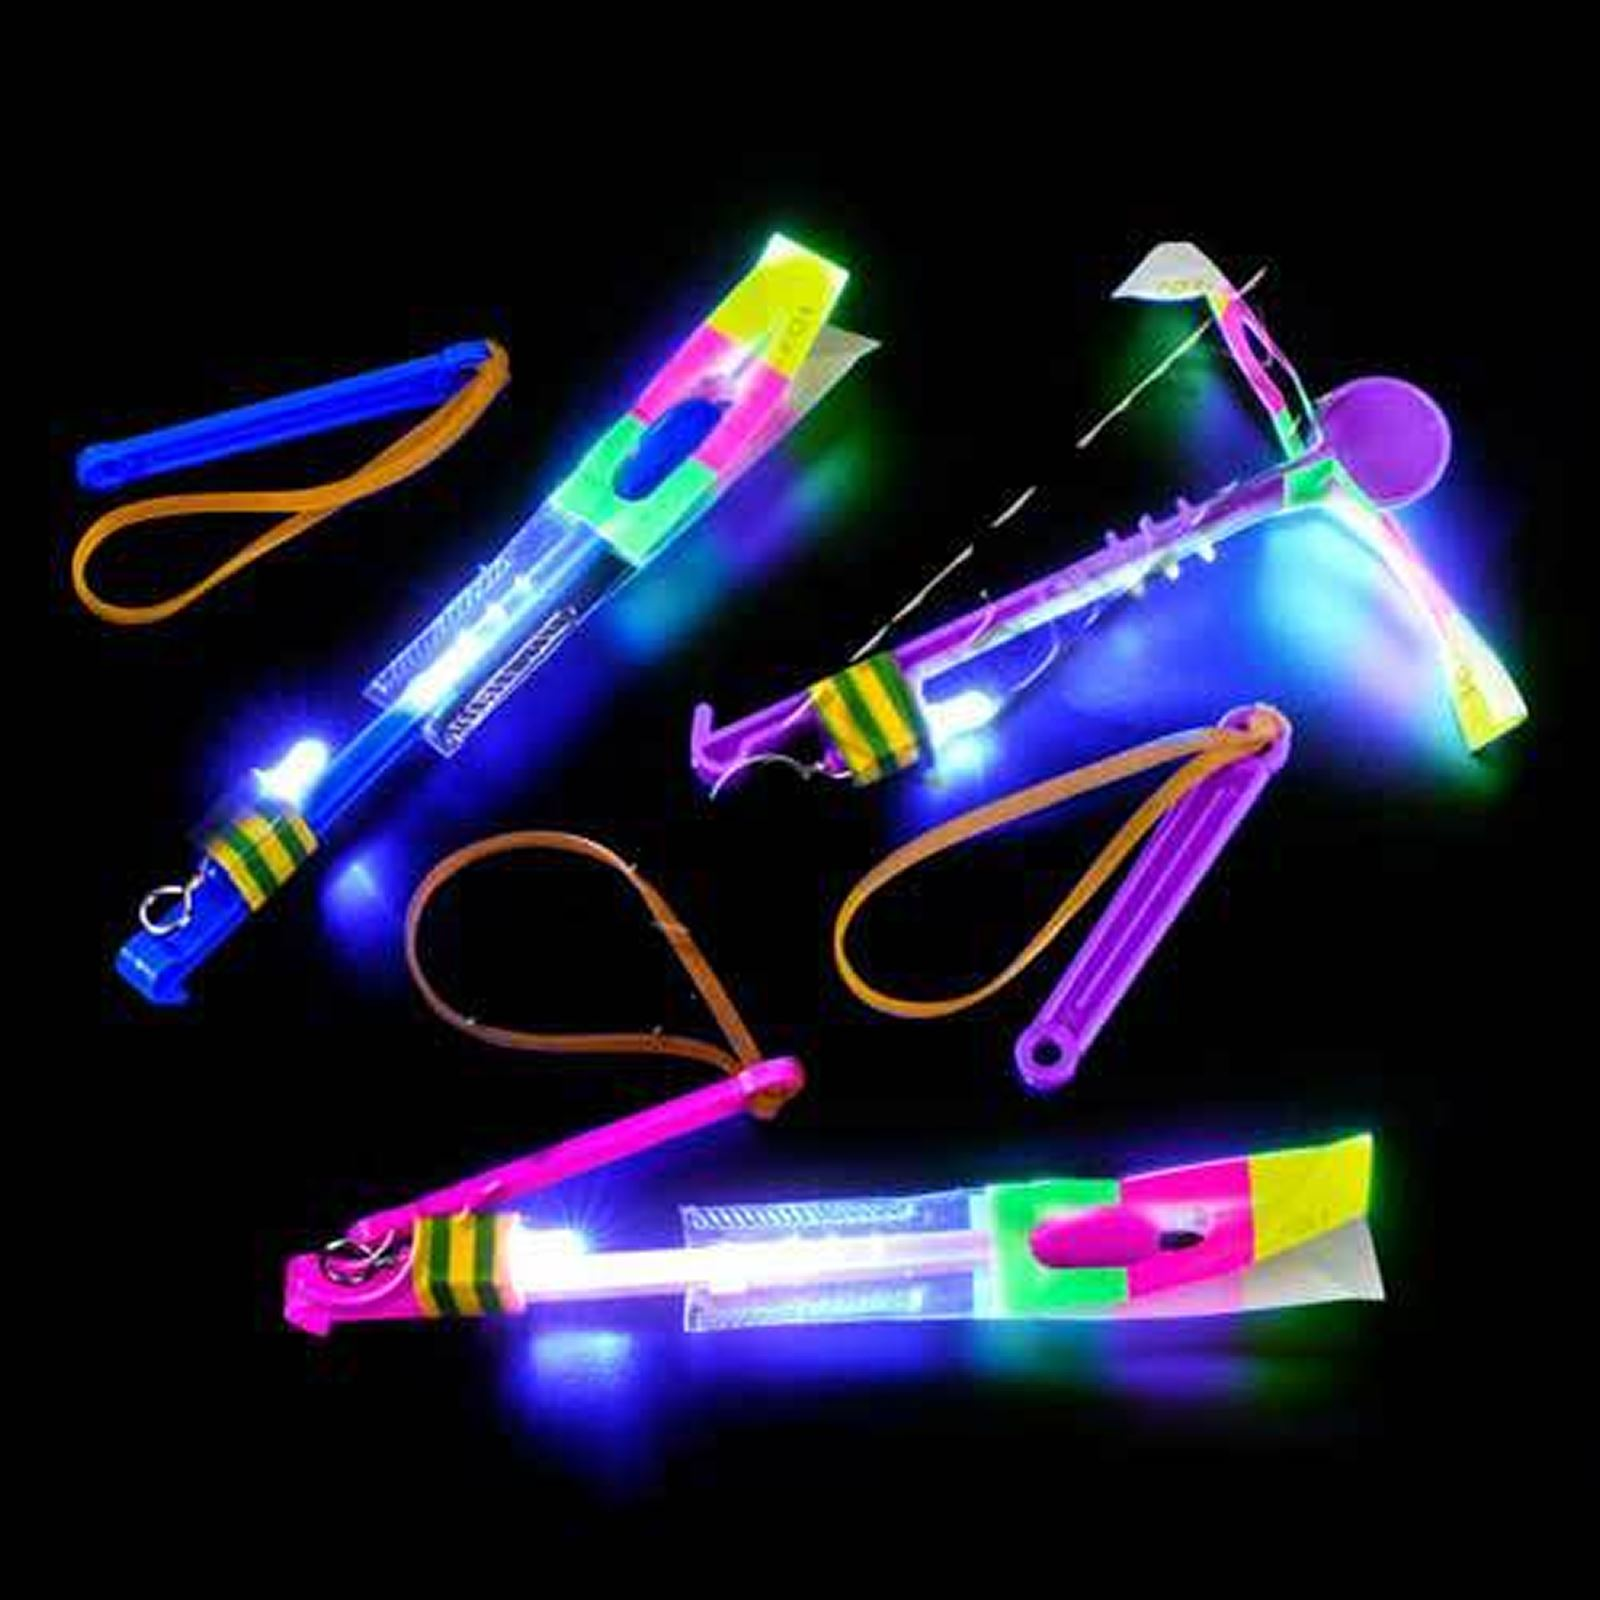 led heli boys girls toy fun lights party bag xmas christmas stocking filler ebay. Black Bedroom Furniture Sets. Home Design Ideas